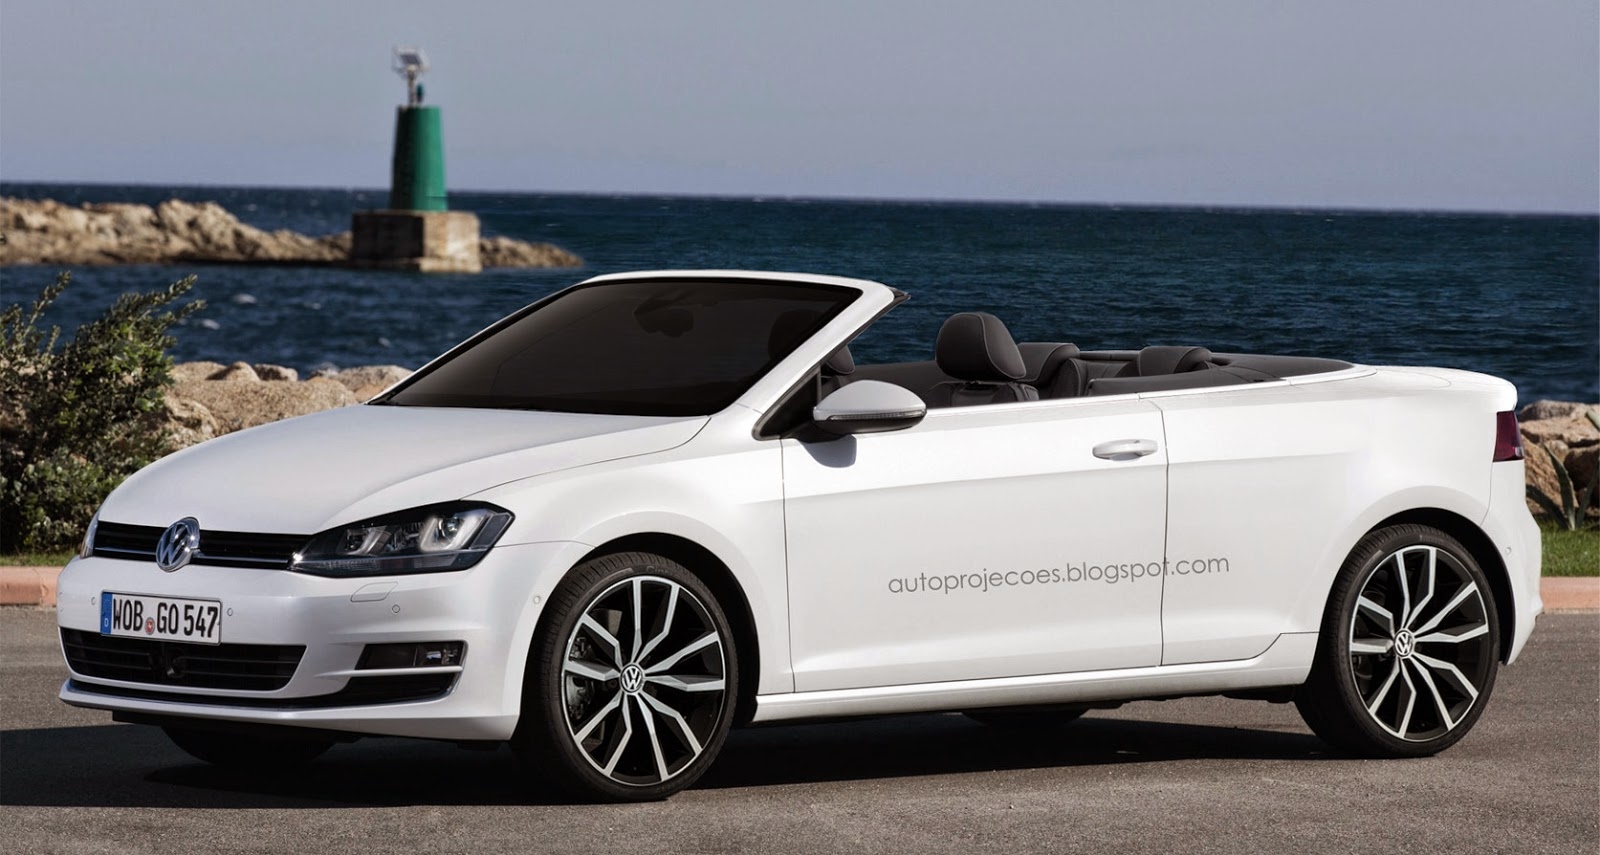 proje o volkswagen golf cabrio 2015 auto proje es. Black Bedroom Furniture Sets. Home Design Ideas